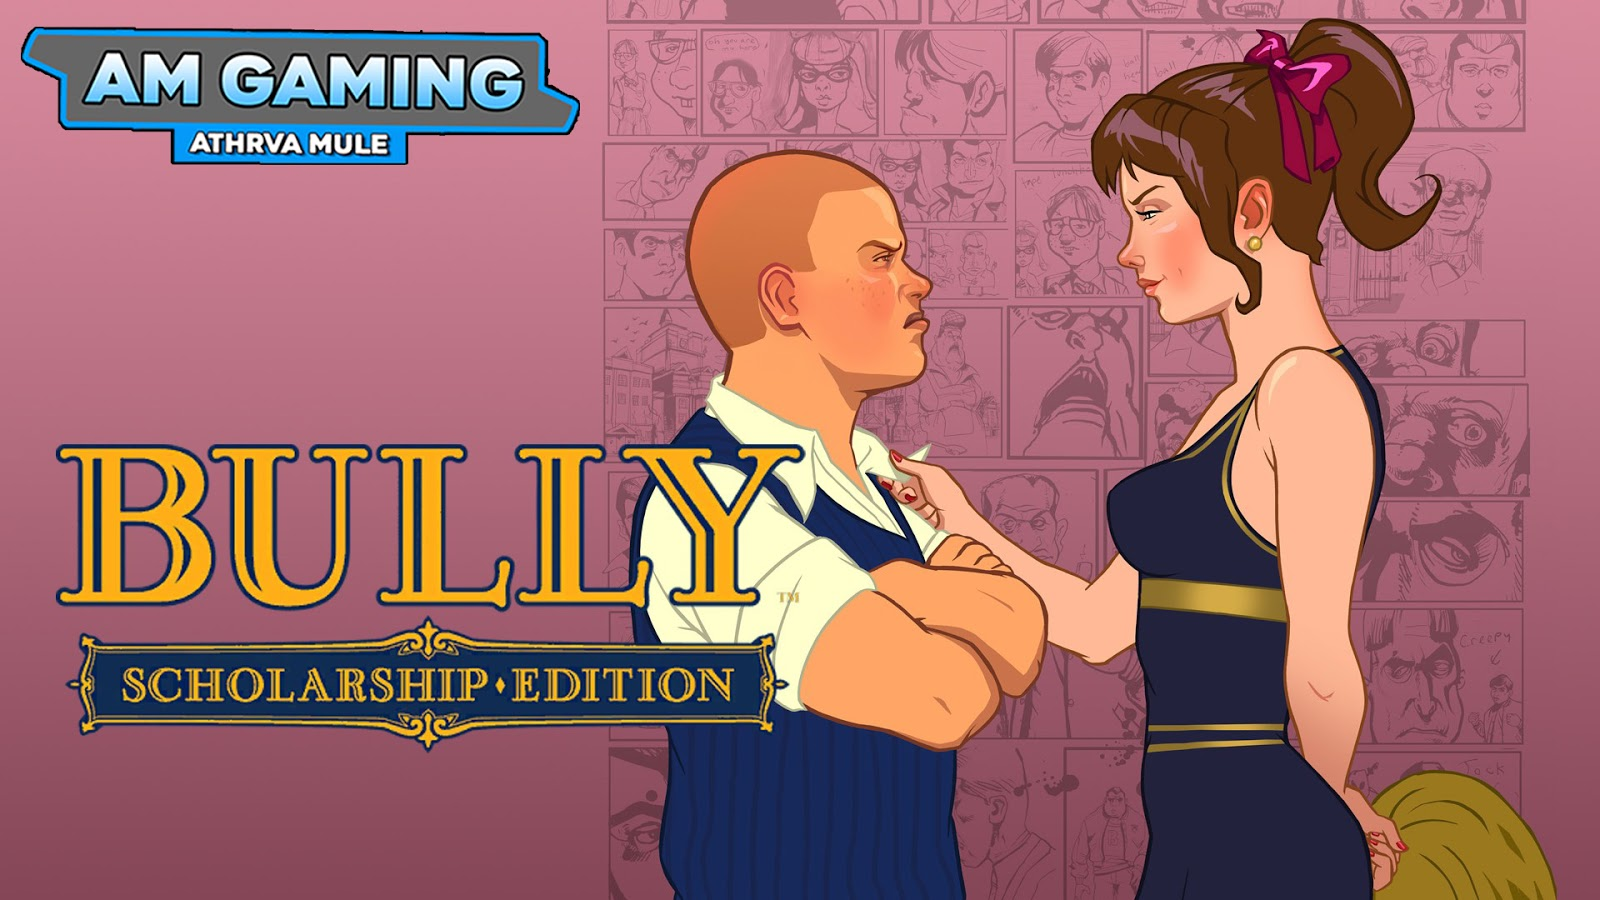 926MB] Download Bully : Scholarship Edition Free Highly